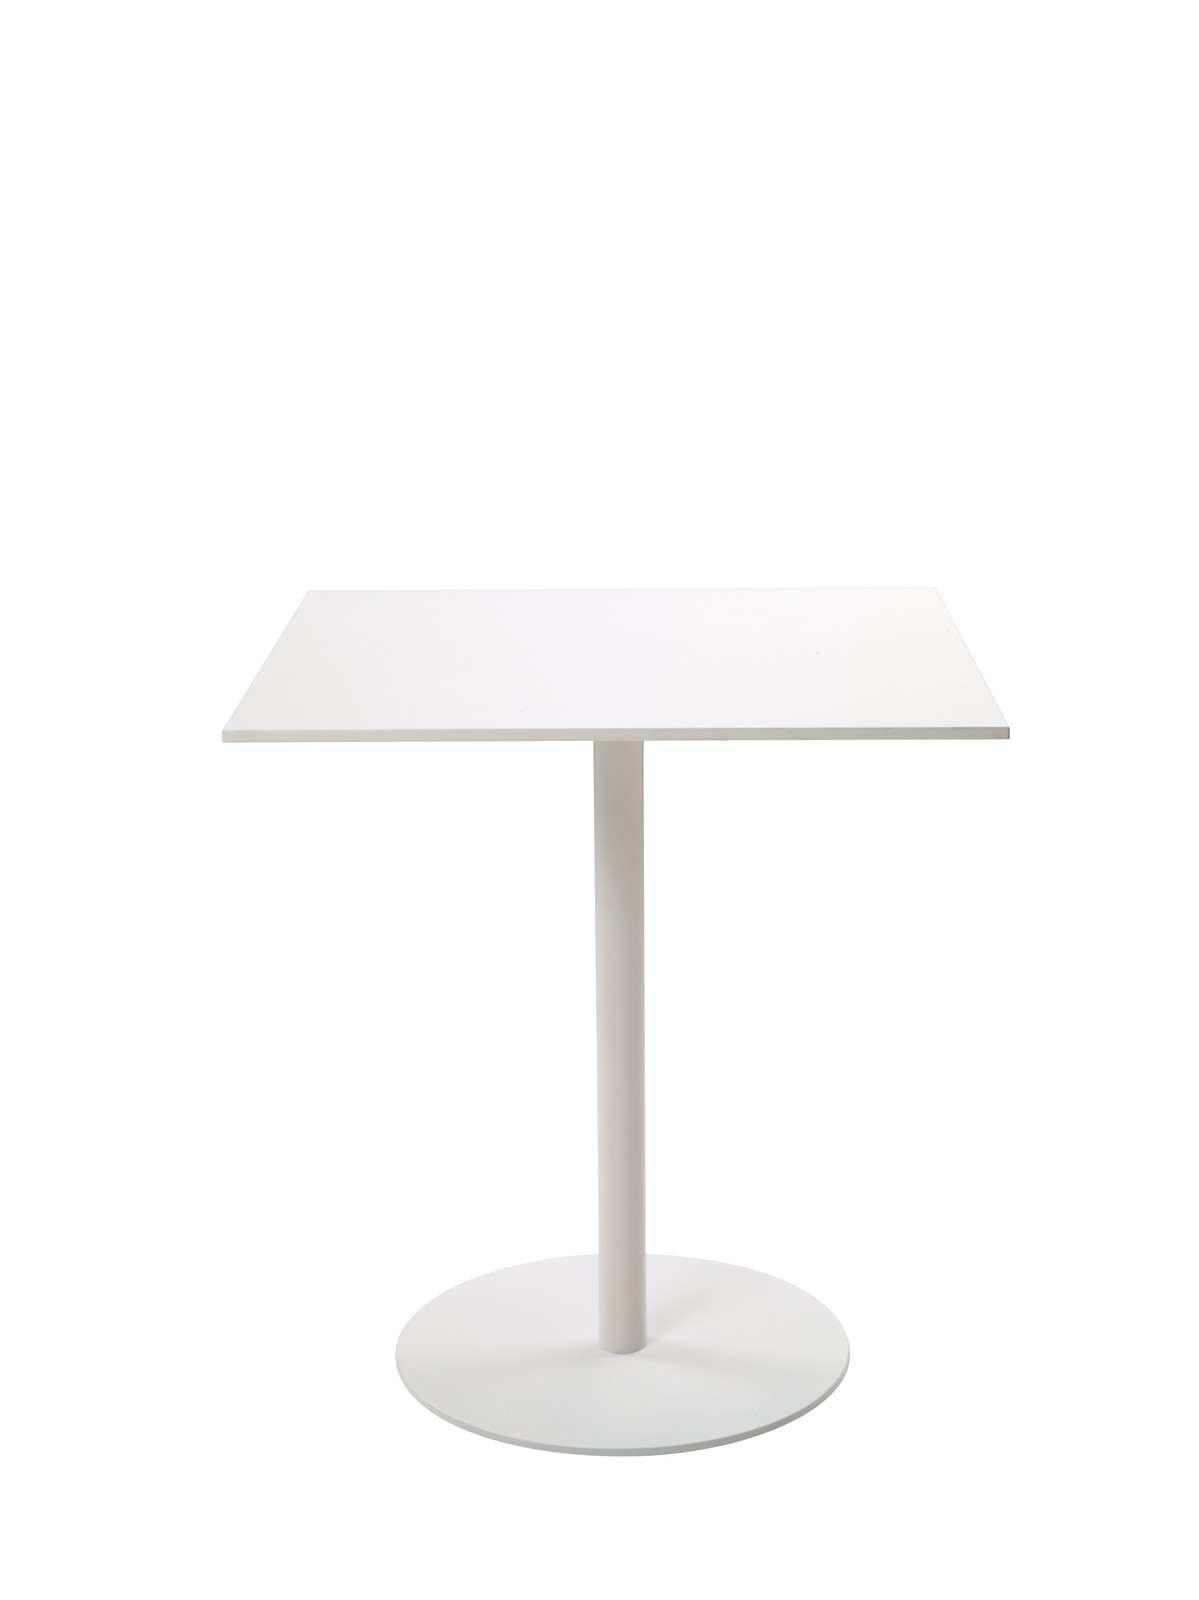 T1 Cafe Square Table white painted metal, white werzalit